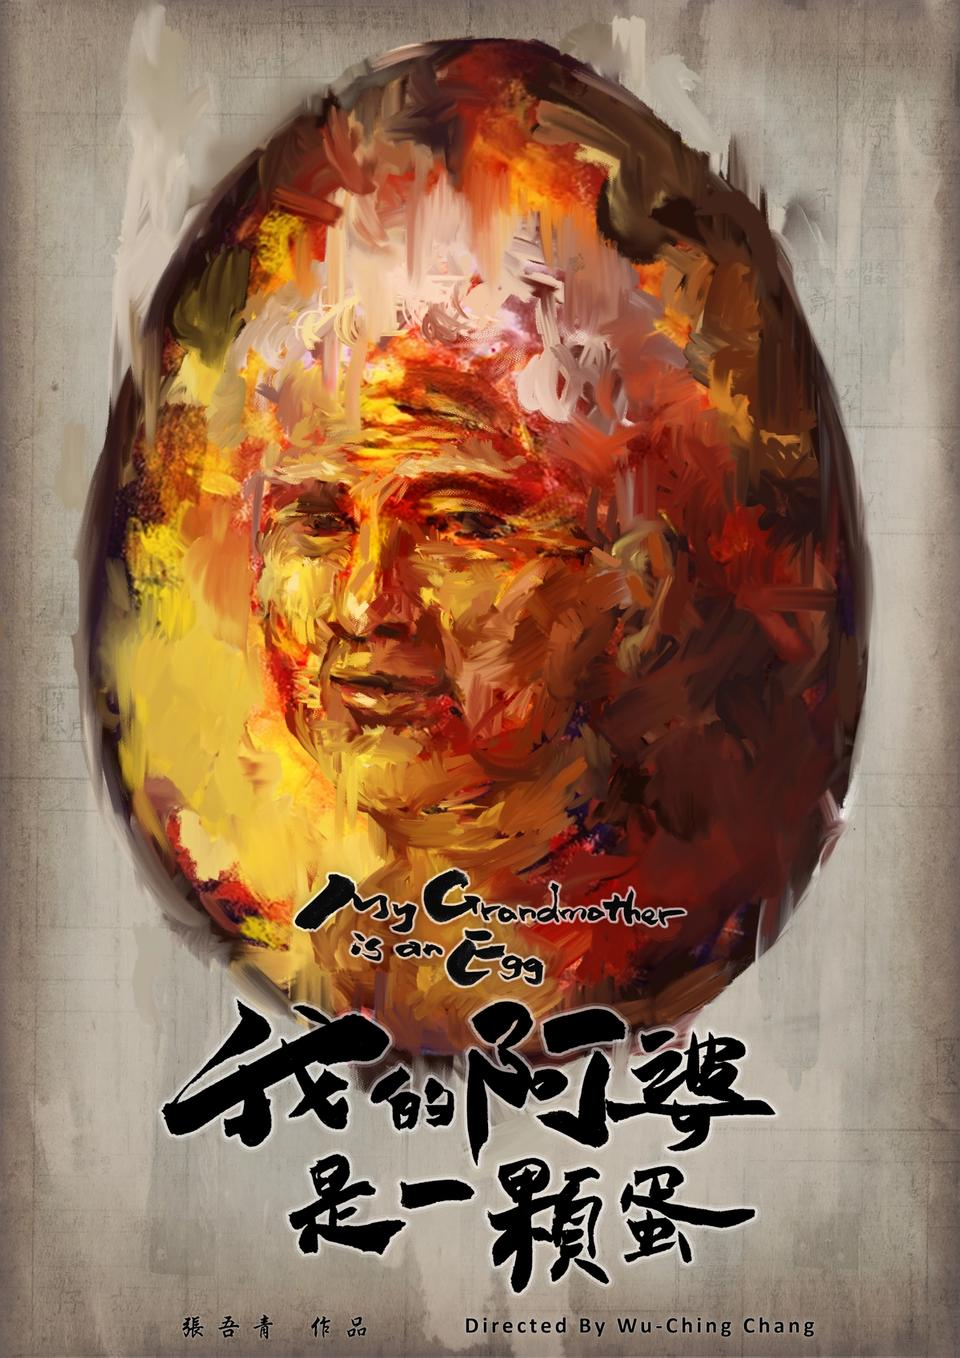 Wu-Ching Chang's My Grandmother is an Egg